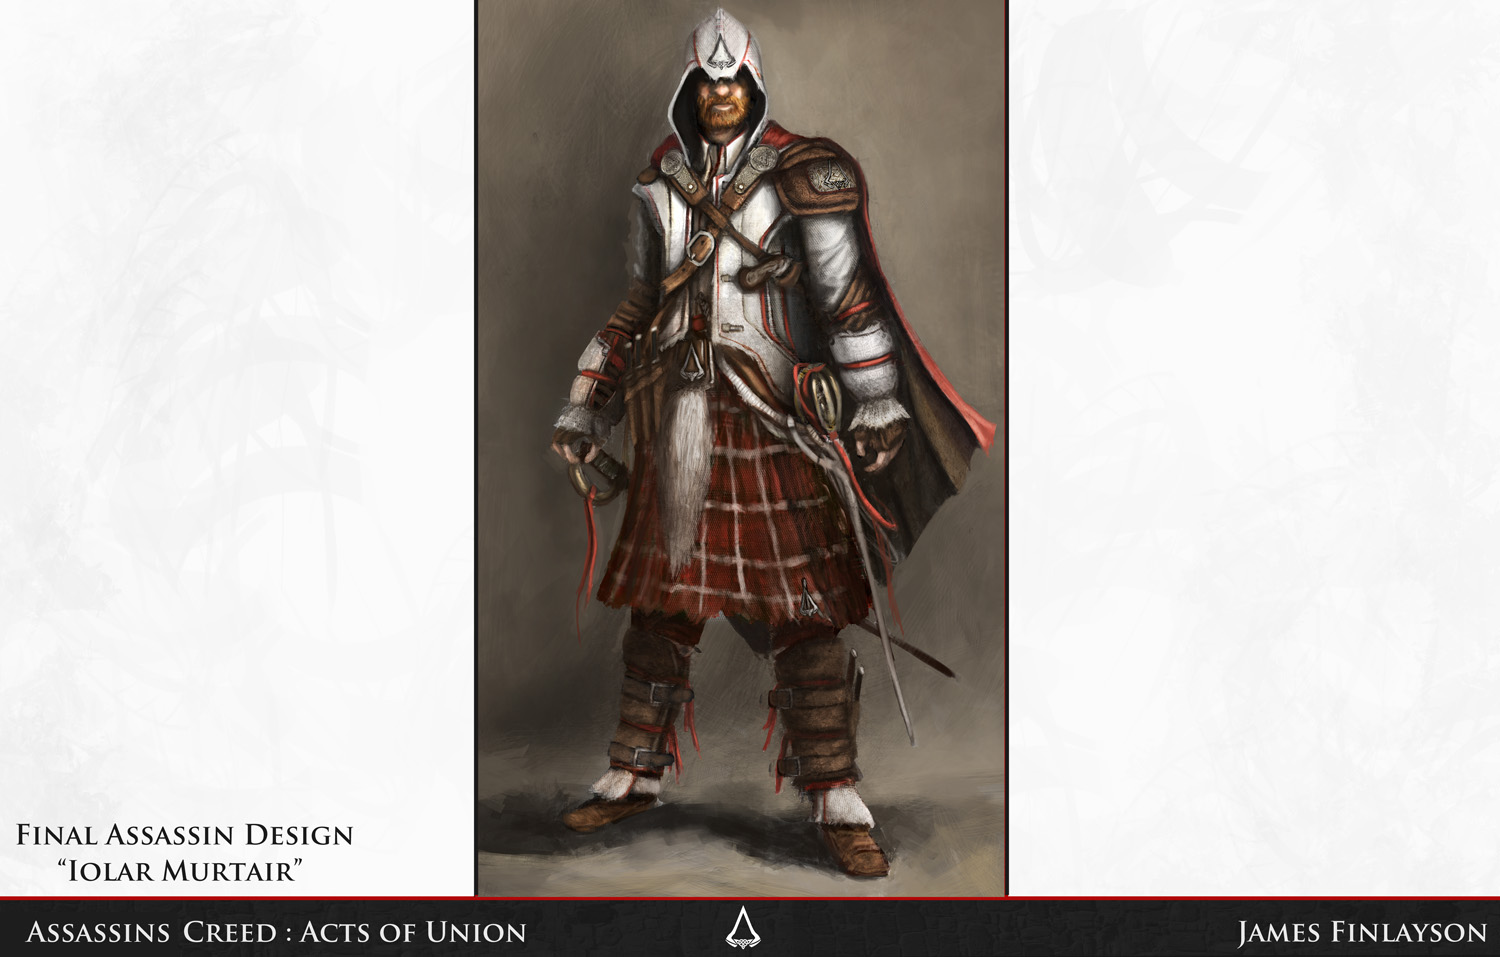 James Finlayson Concepts: Assassins Creed university project